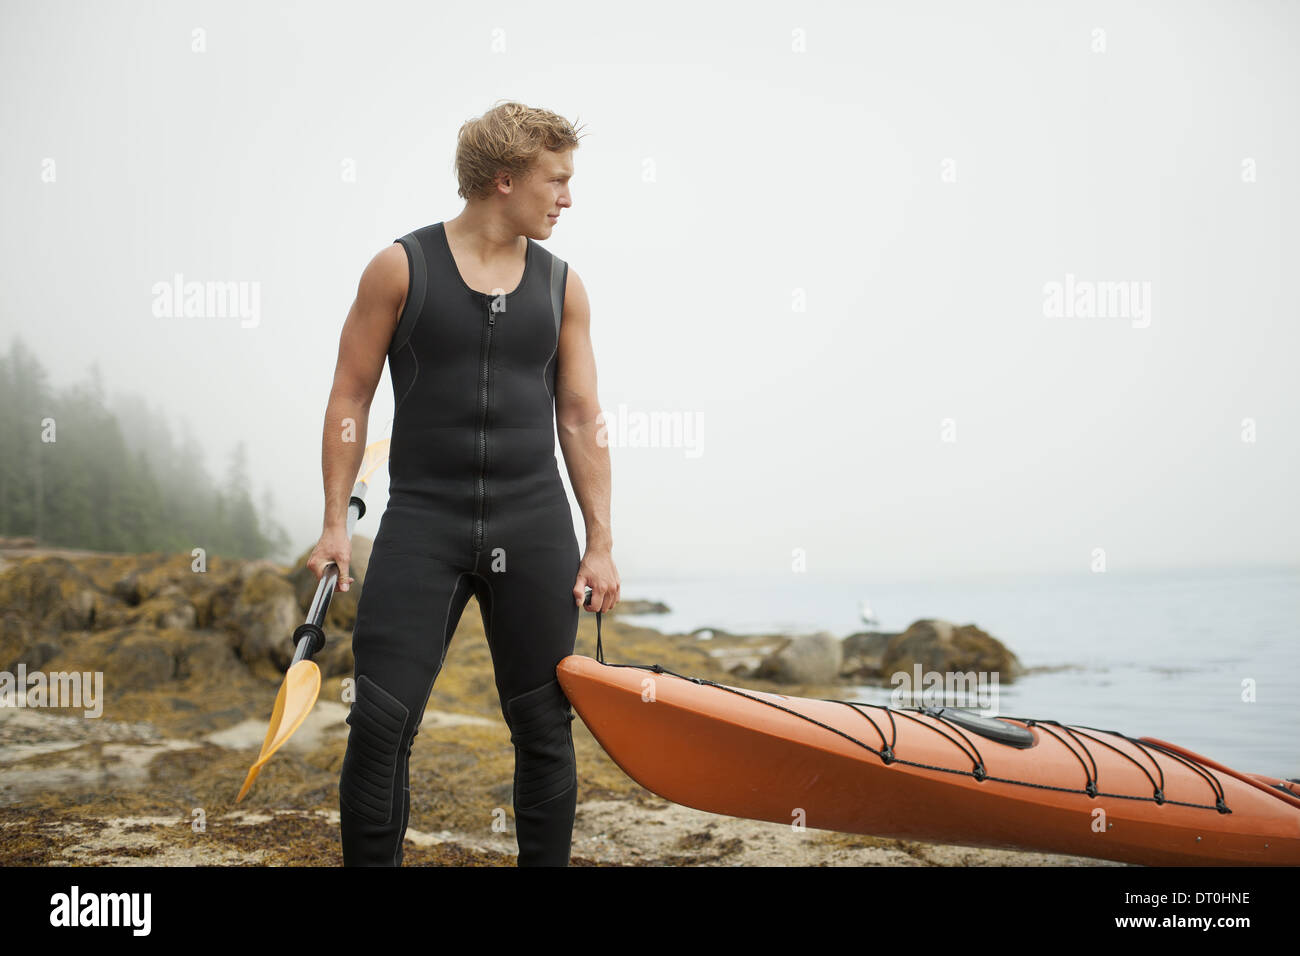 New York state USA man wetsuit kayak onto the shore in misty weather - Stock Image